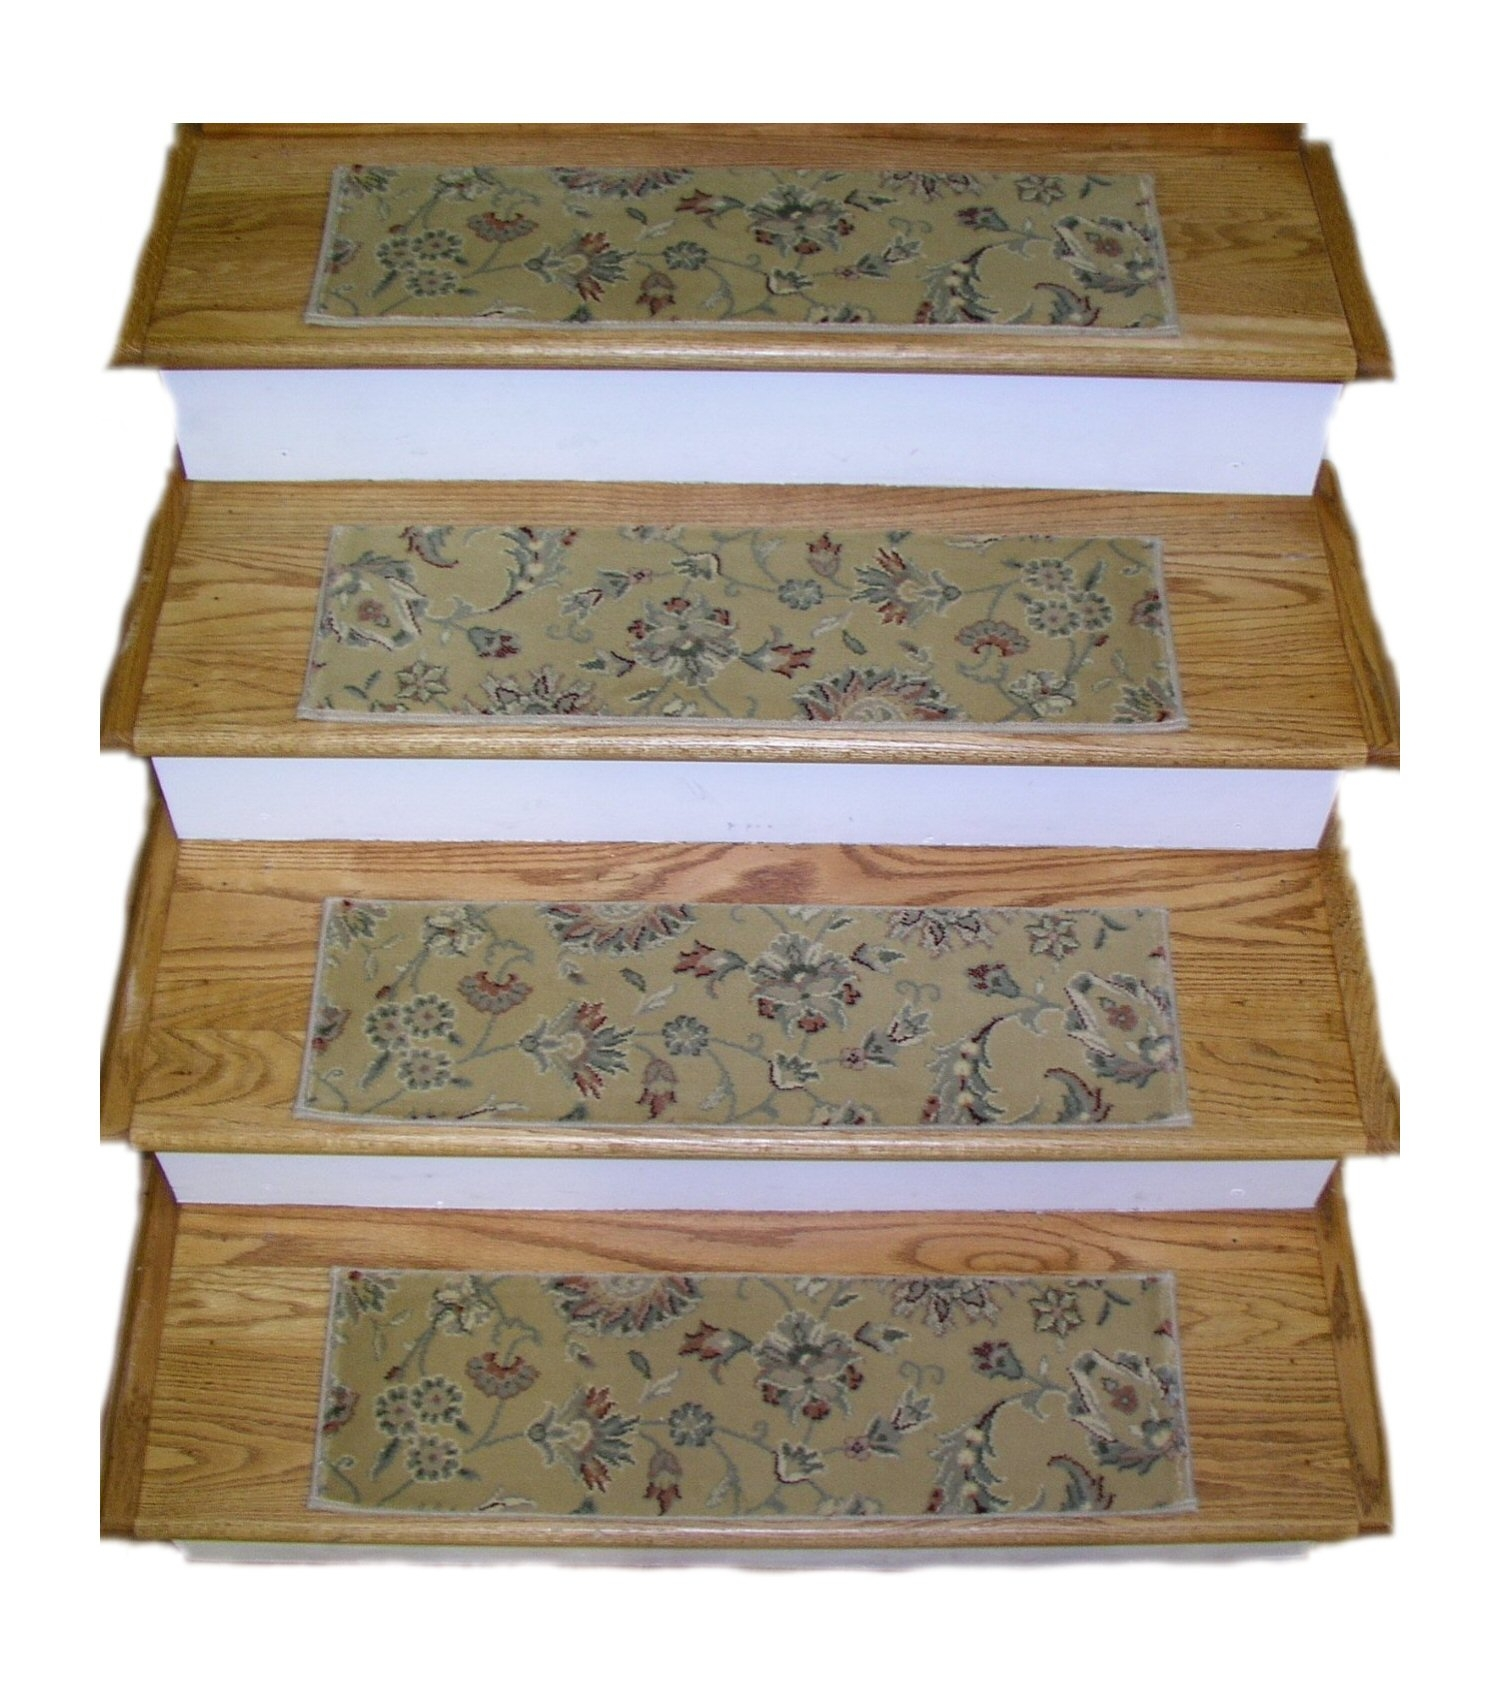 Finished Carpet Stair Treads Tread Sets For Stairs Carpet Treads Intended For 8 Inch Stair Treads (Image 6 of 15)